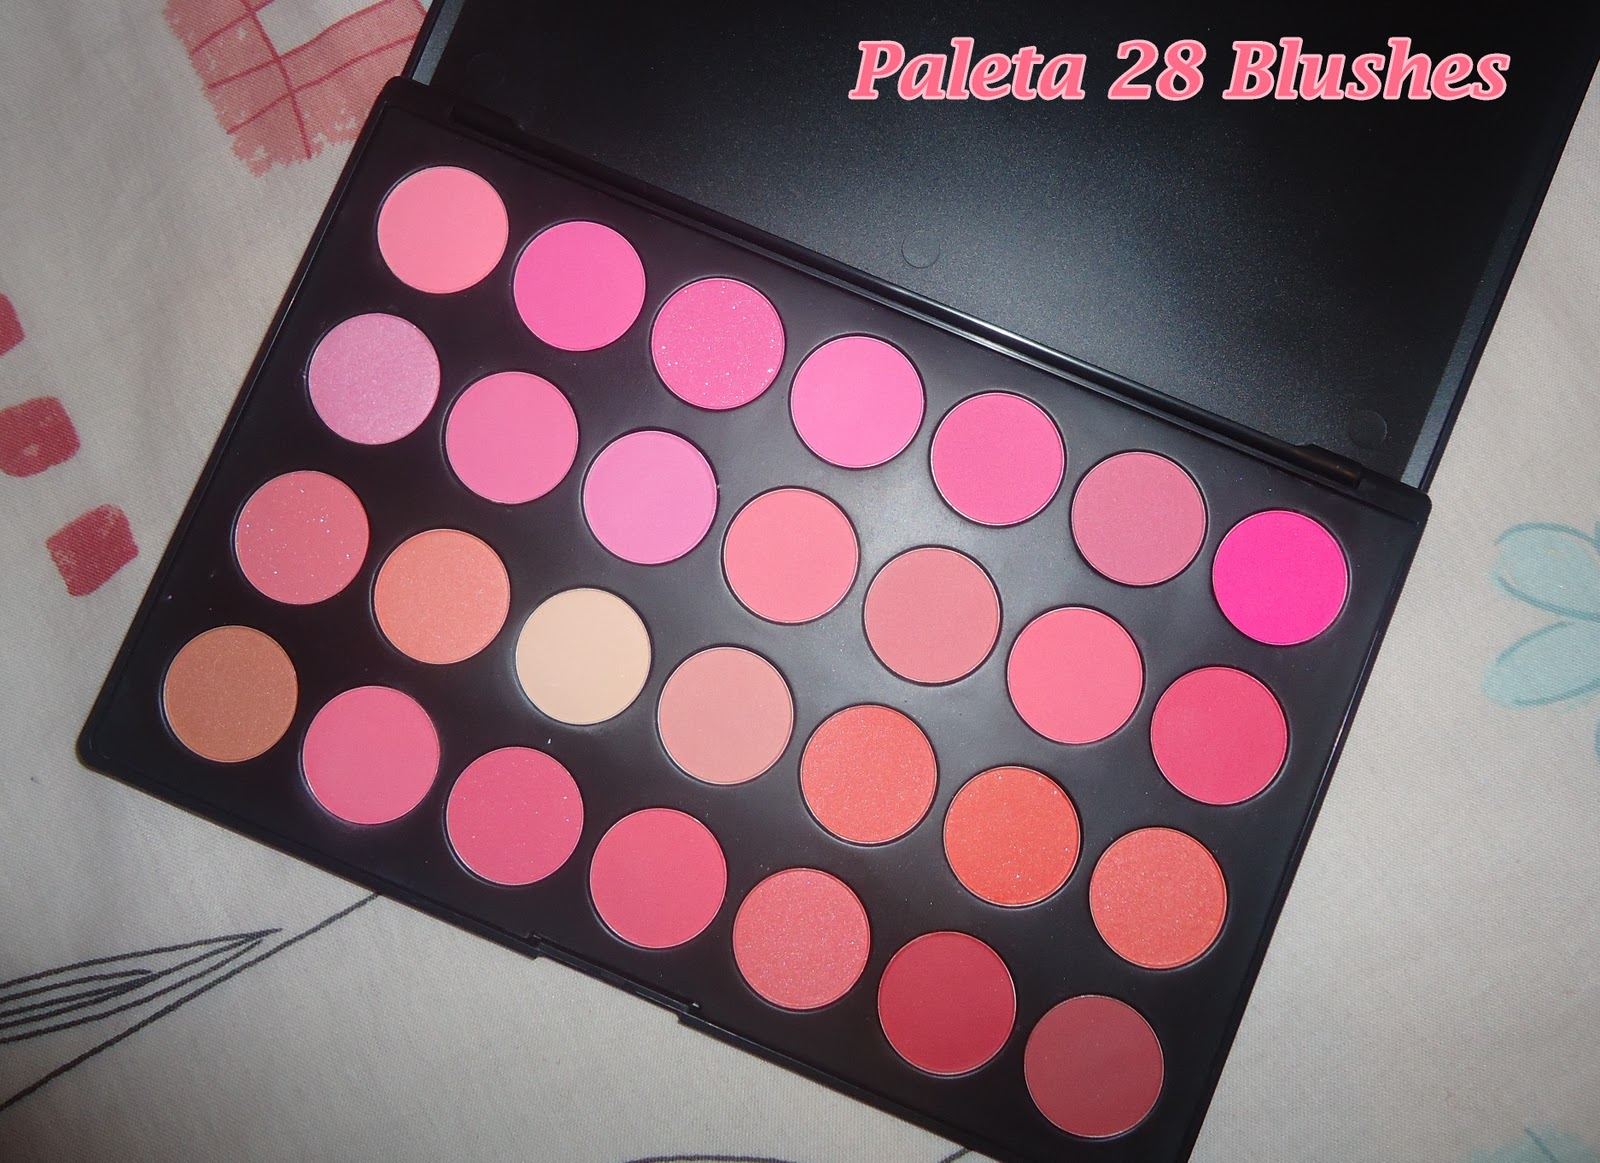 paleta 28 blushes